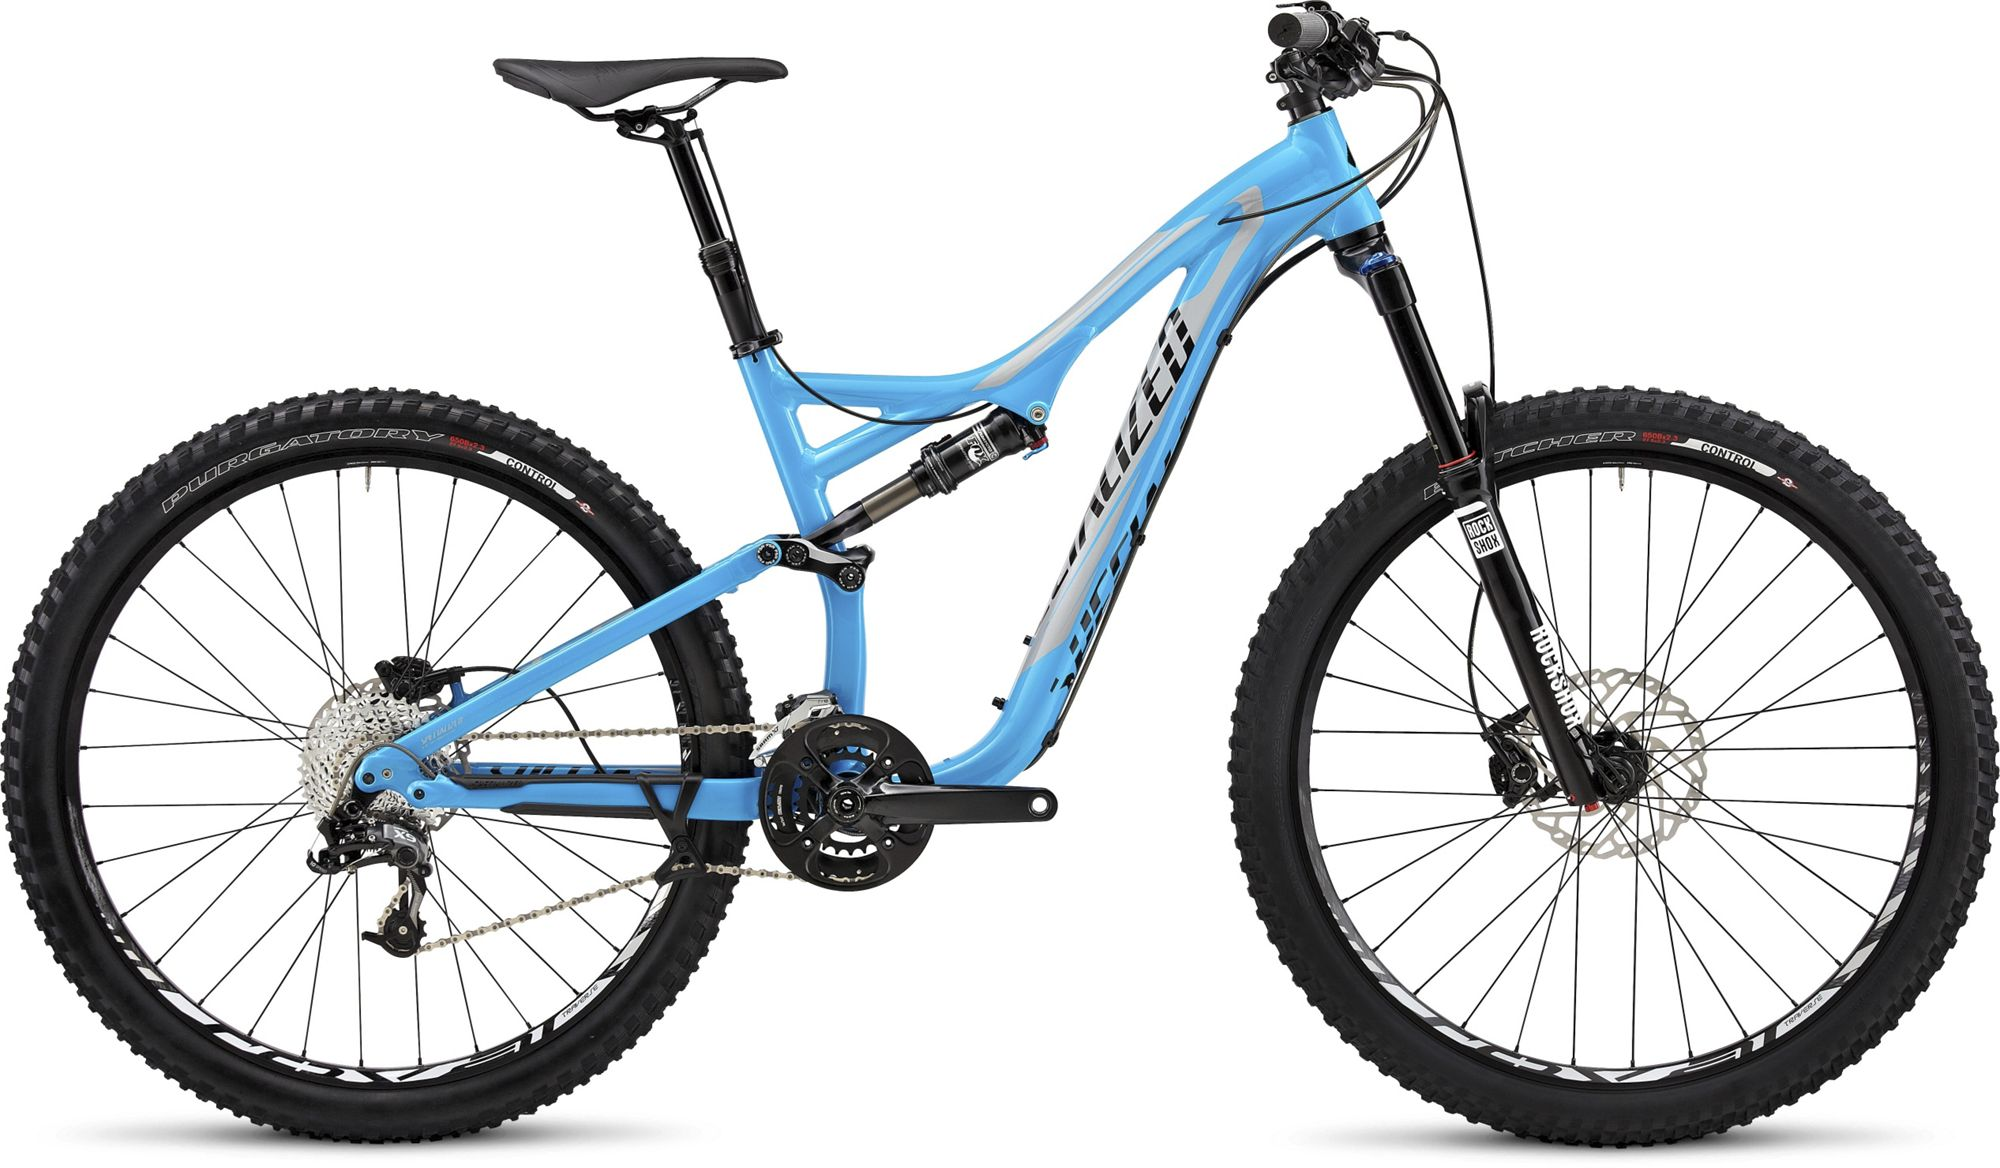 Specialized STUMPJUMPER FSR COMP EVO 650B 2015 review - The Bike List